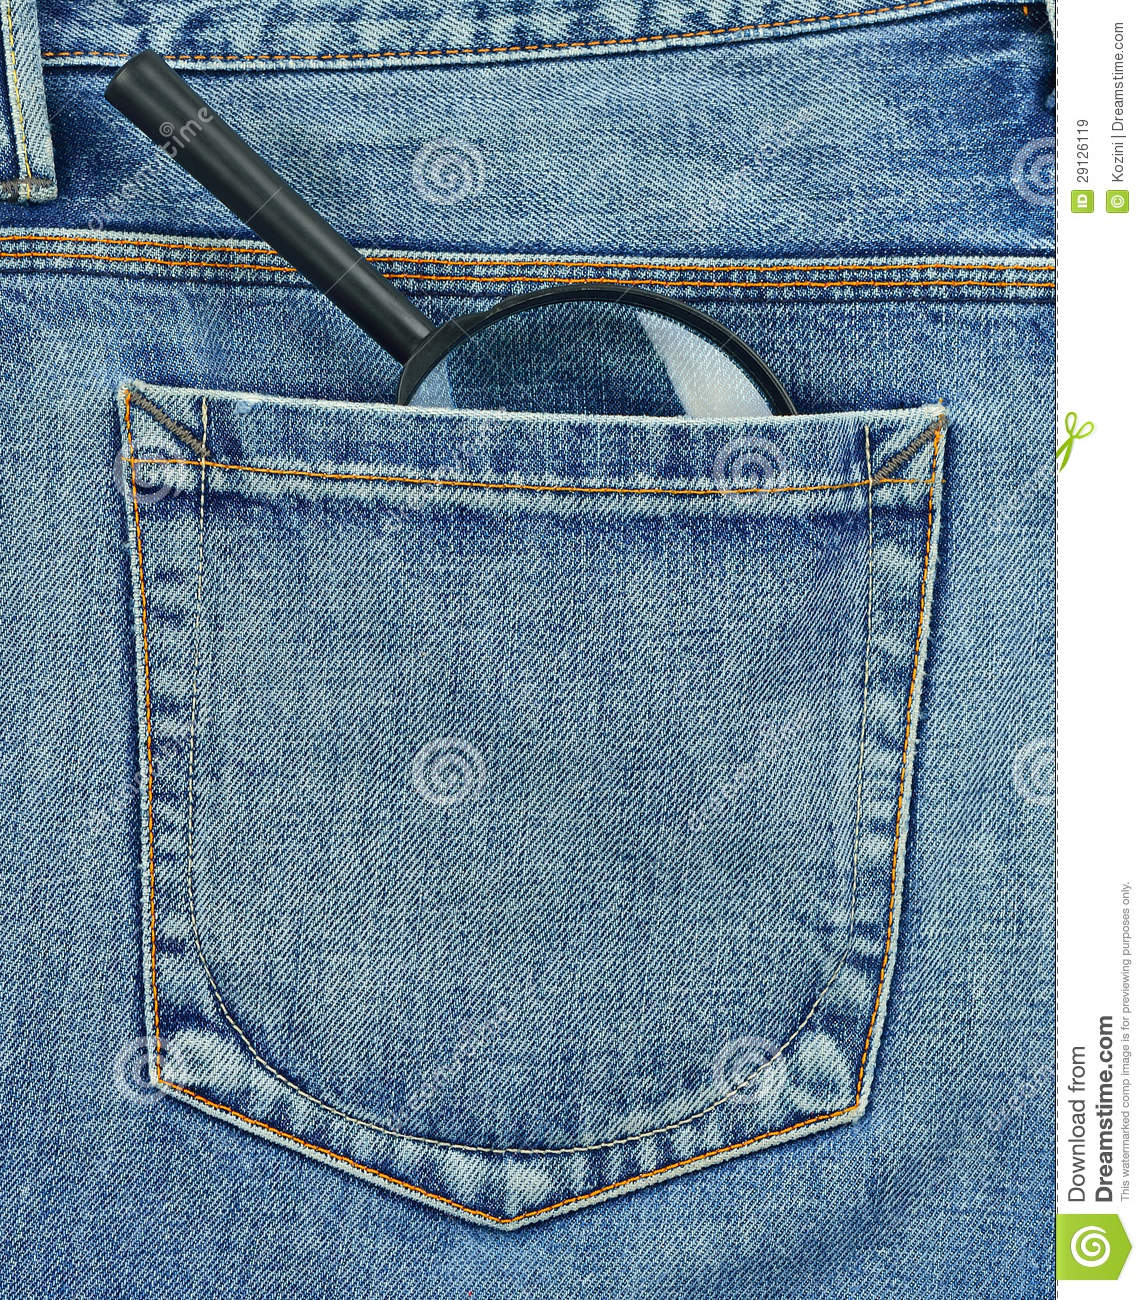 Back Pocket Of Jeans With Magnifying Glass Stock Image - Image 29126119